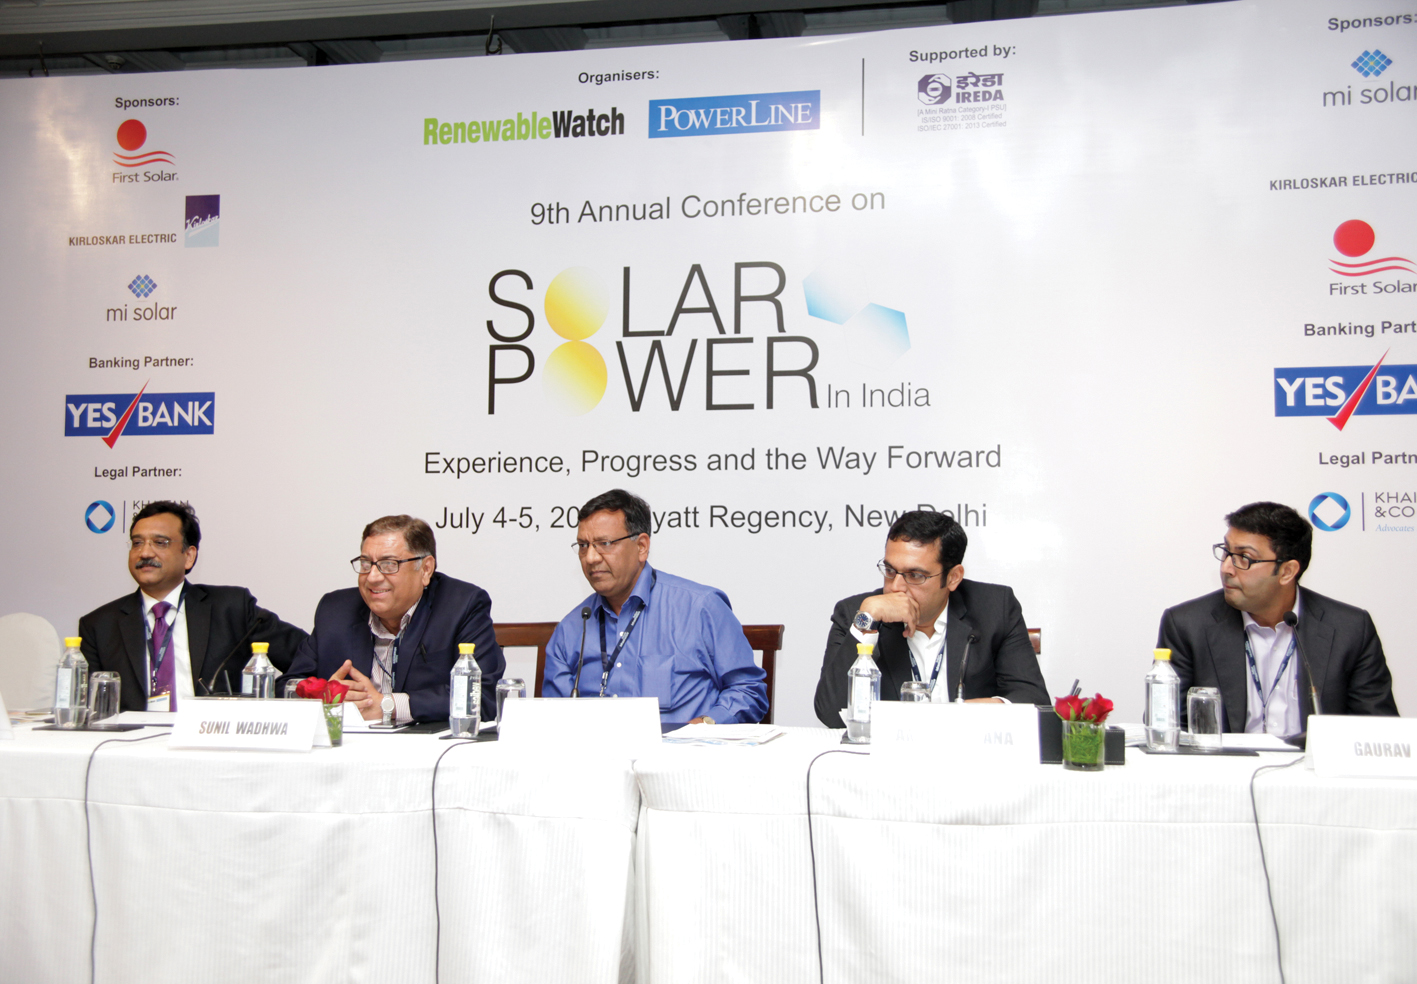 "(From left) Sanjay Aggarwal, MD, Fortum India; Sunil Wadhwa, MD, IL&FS Energy Development Company; Rohit Modi, CEO, Solar Business, Suzlon Energy; Amit Khurana, Group MD, MI Solar; and Gaurav Sood, MD, Solairedirect, at a panel discussion at the ""Solar Power in India"" conference"